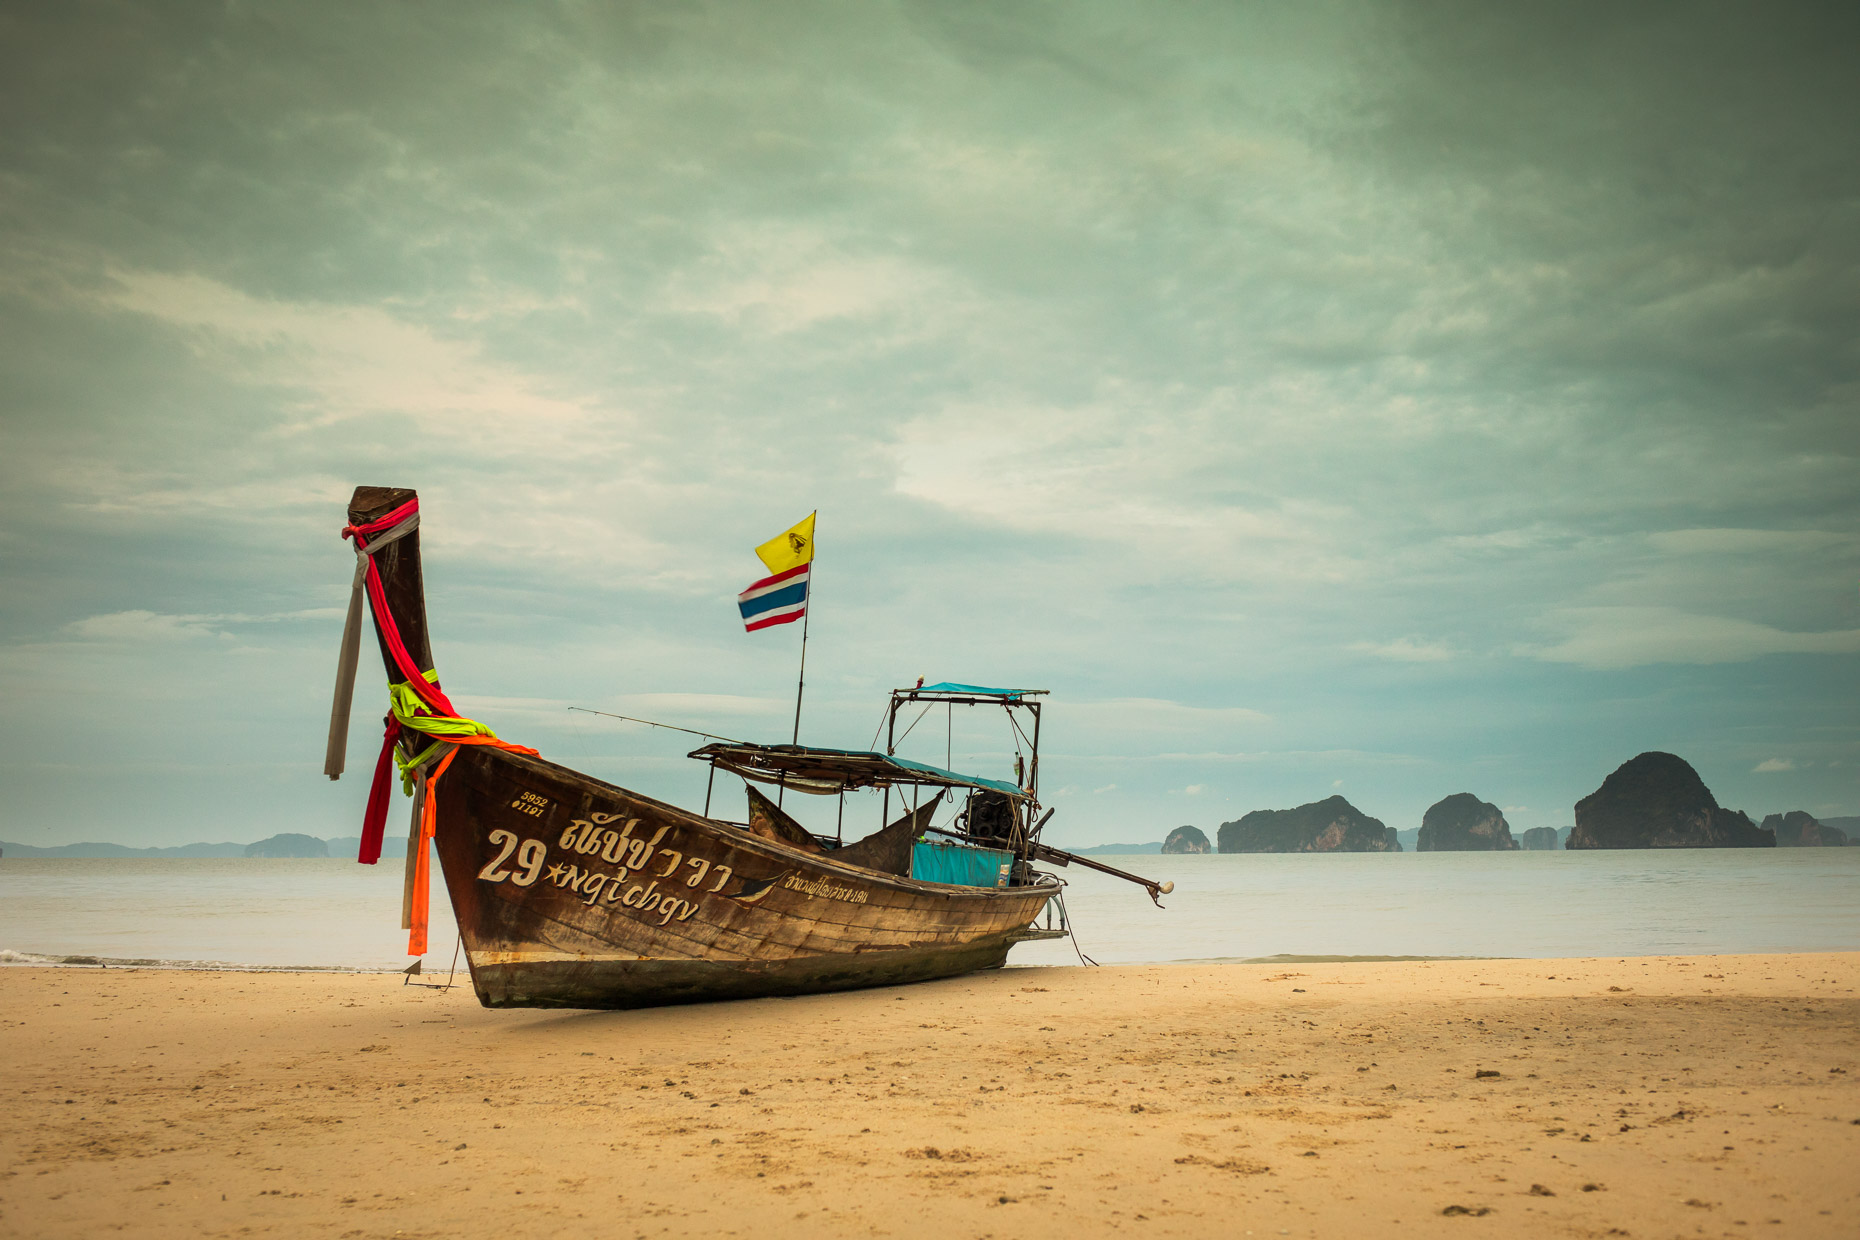 Beached long tail boat in Thailand